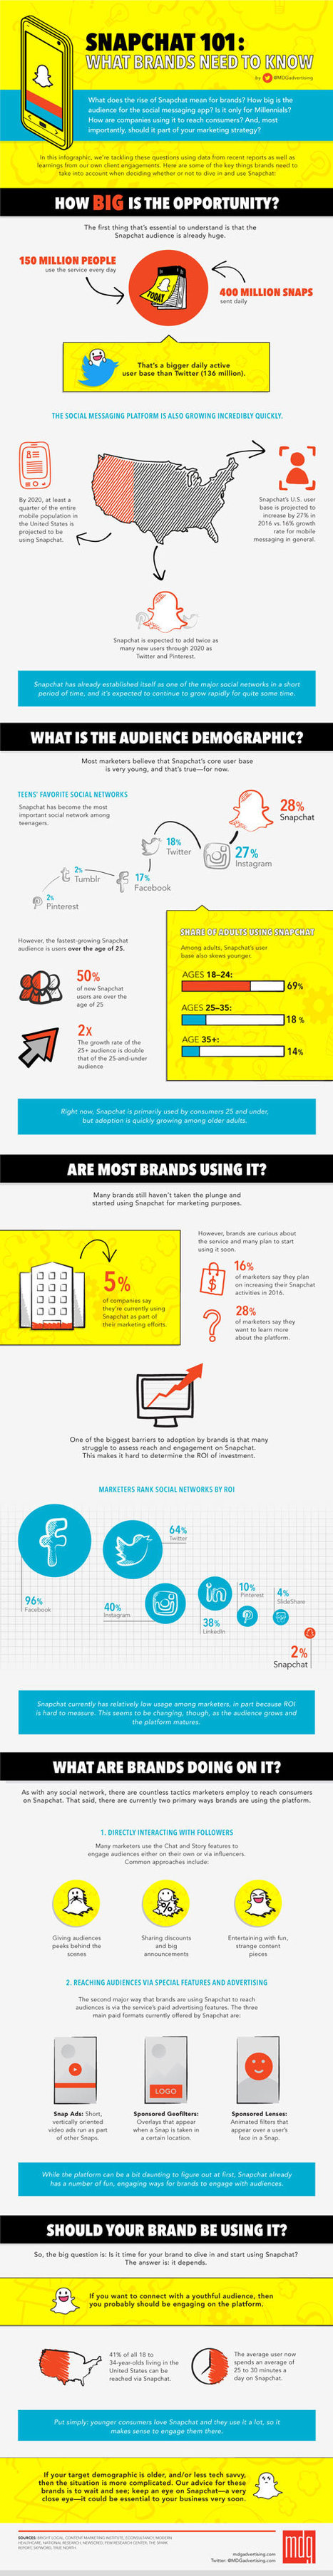 Snapchat 101: What Brands Need to Know #Infographic #snapchatmarketing | Mastering Facebook, Google+, Twitter | Scoop.it